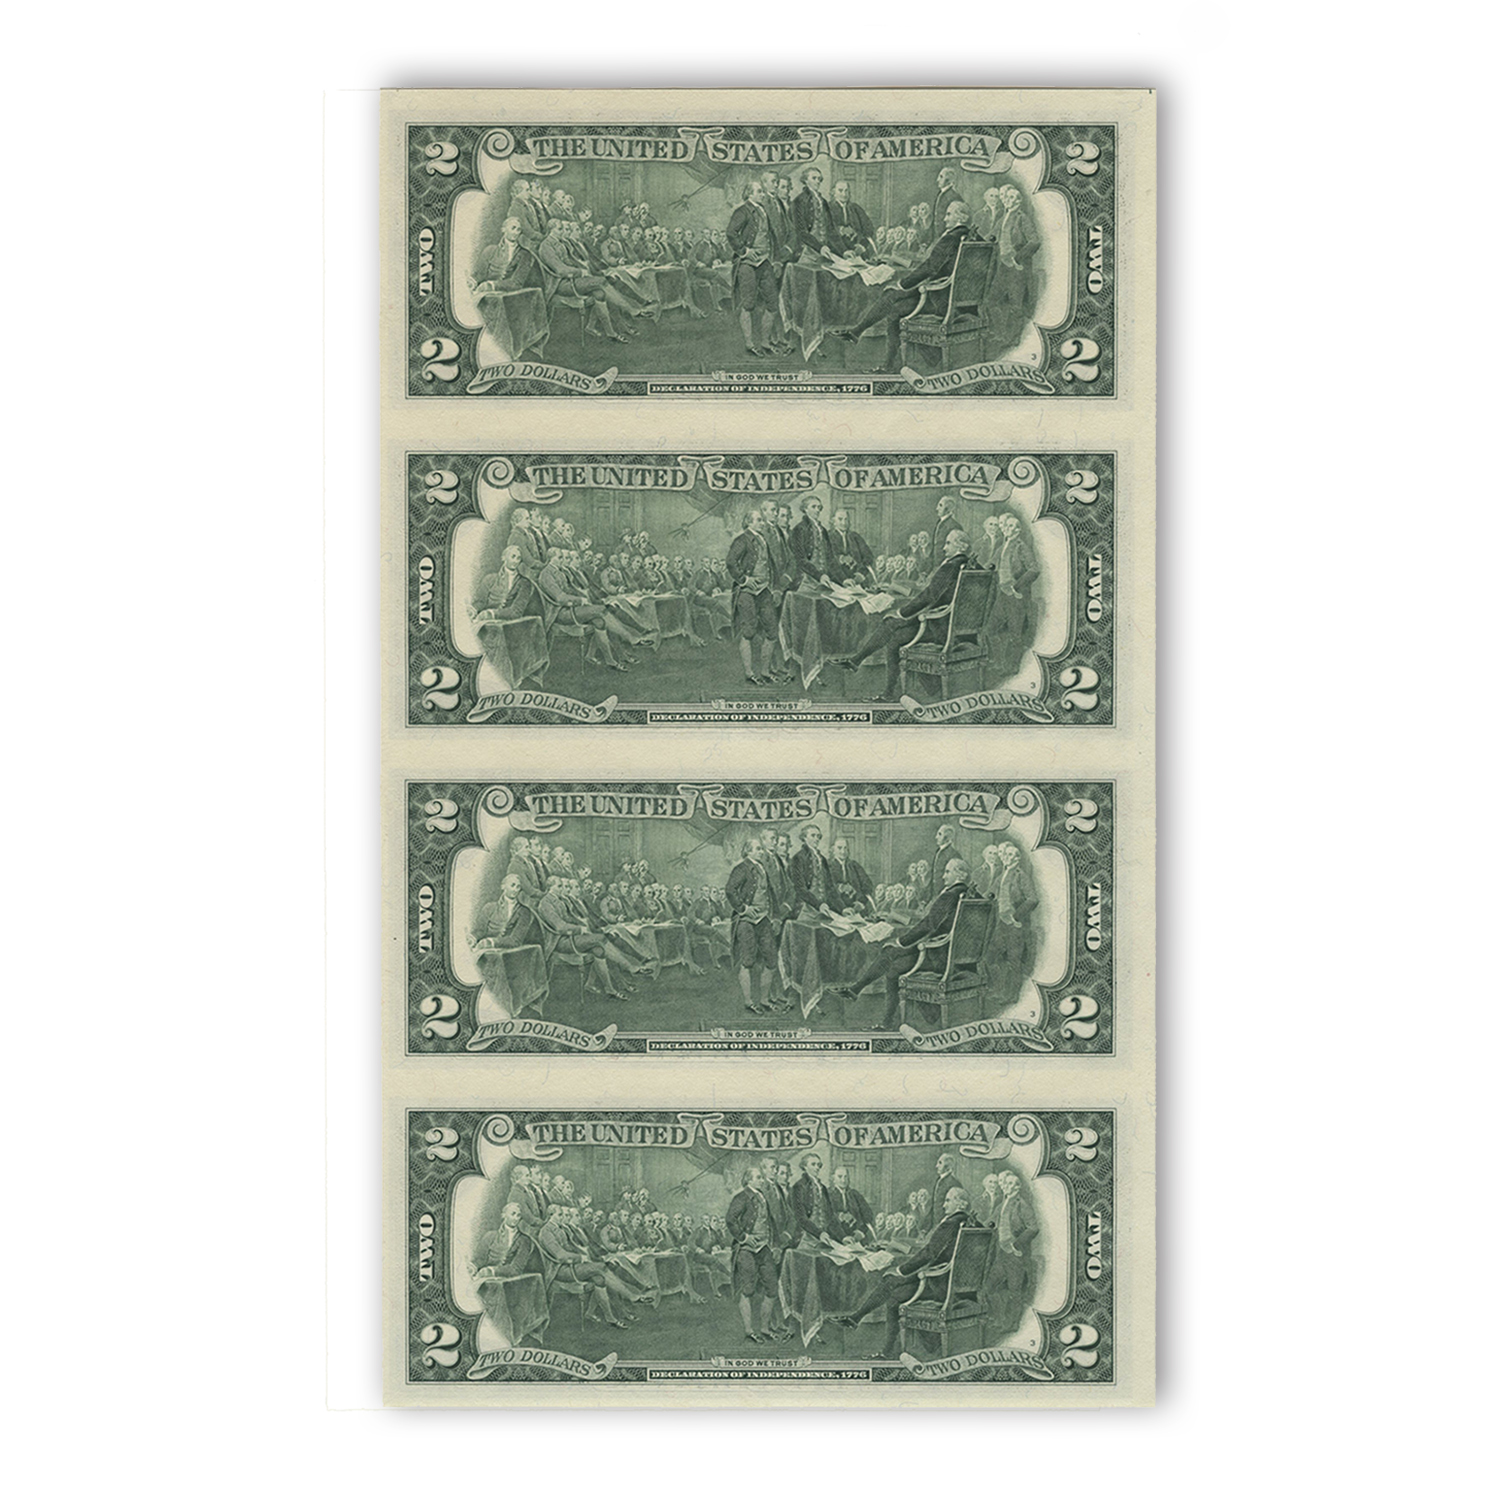 2003 (K-Dallas) $2.00 FRN CU (Uncut sheet of 4)